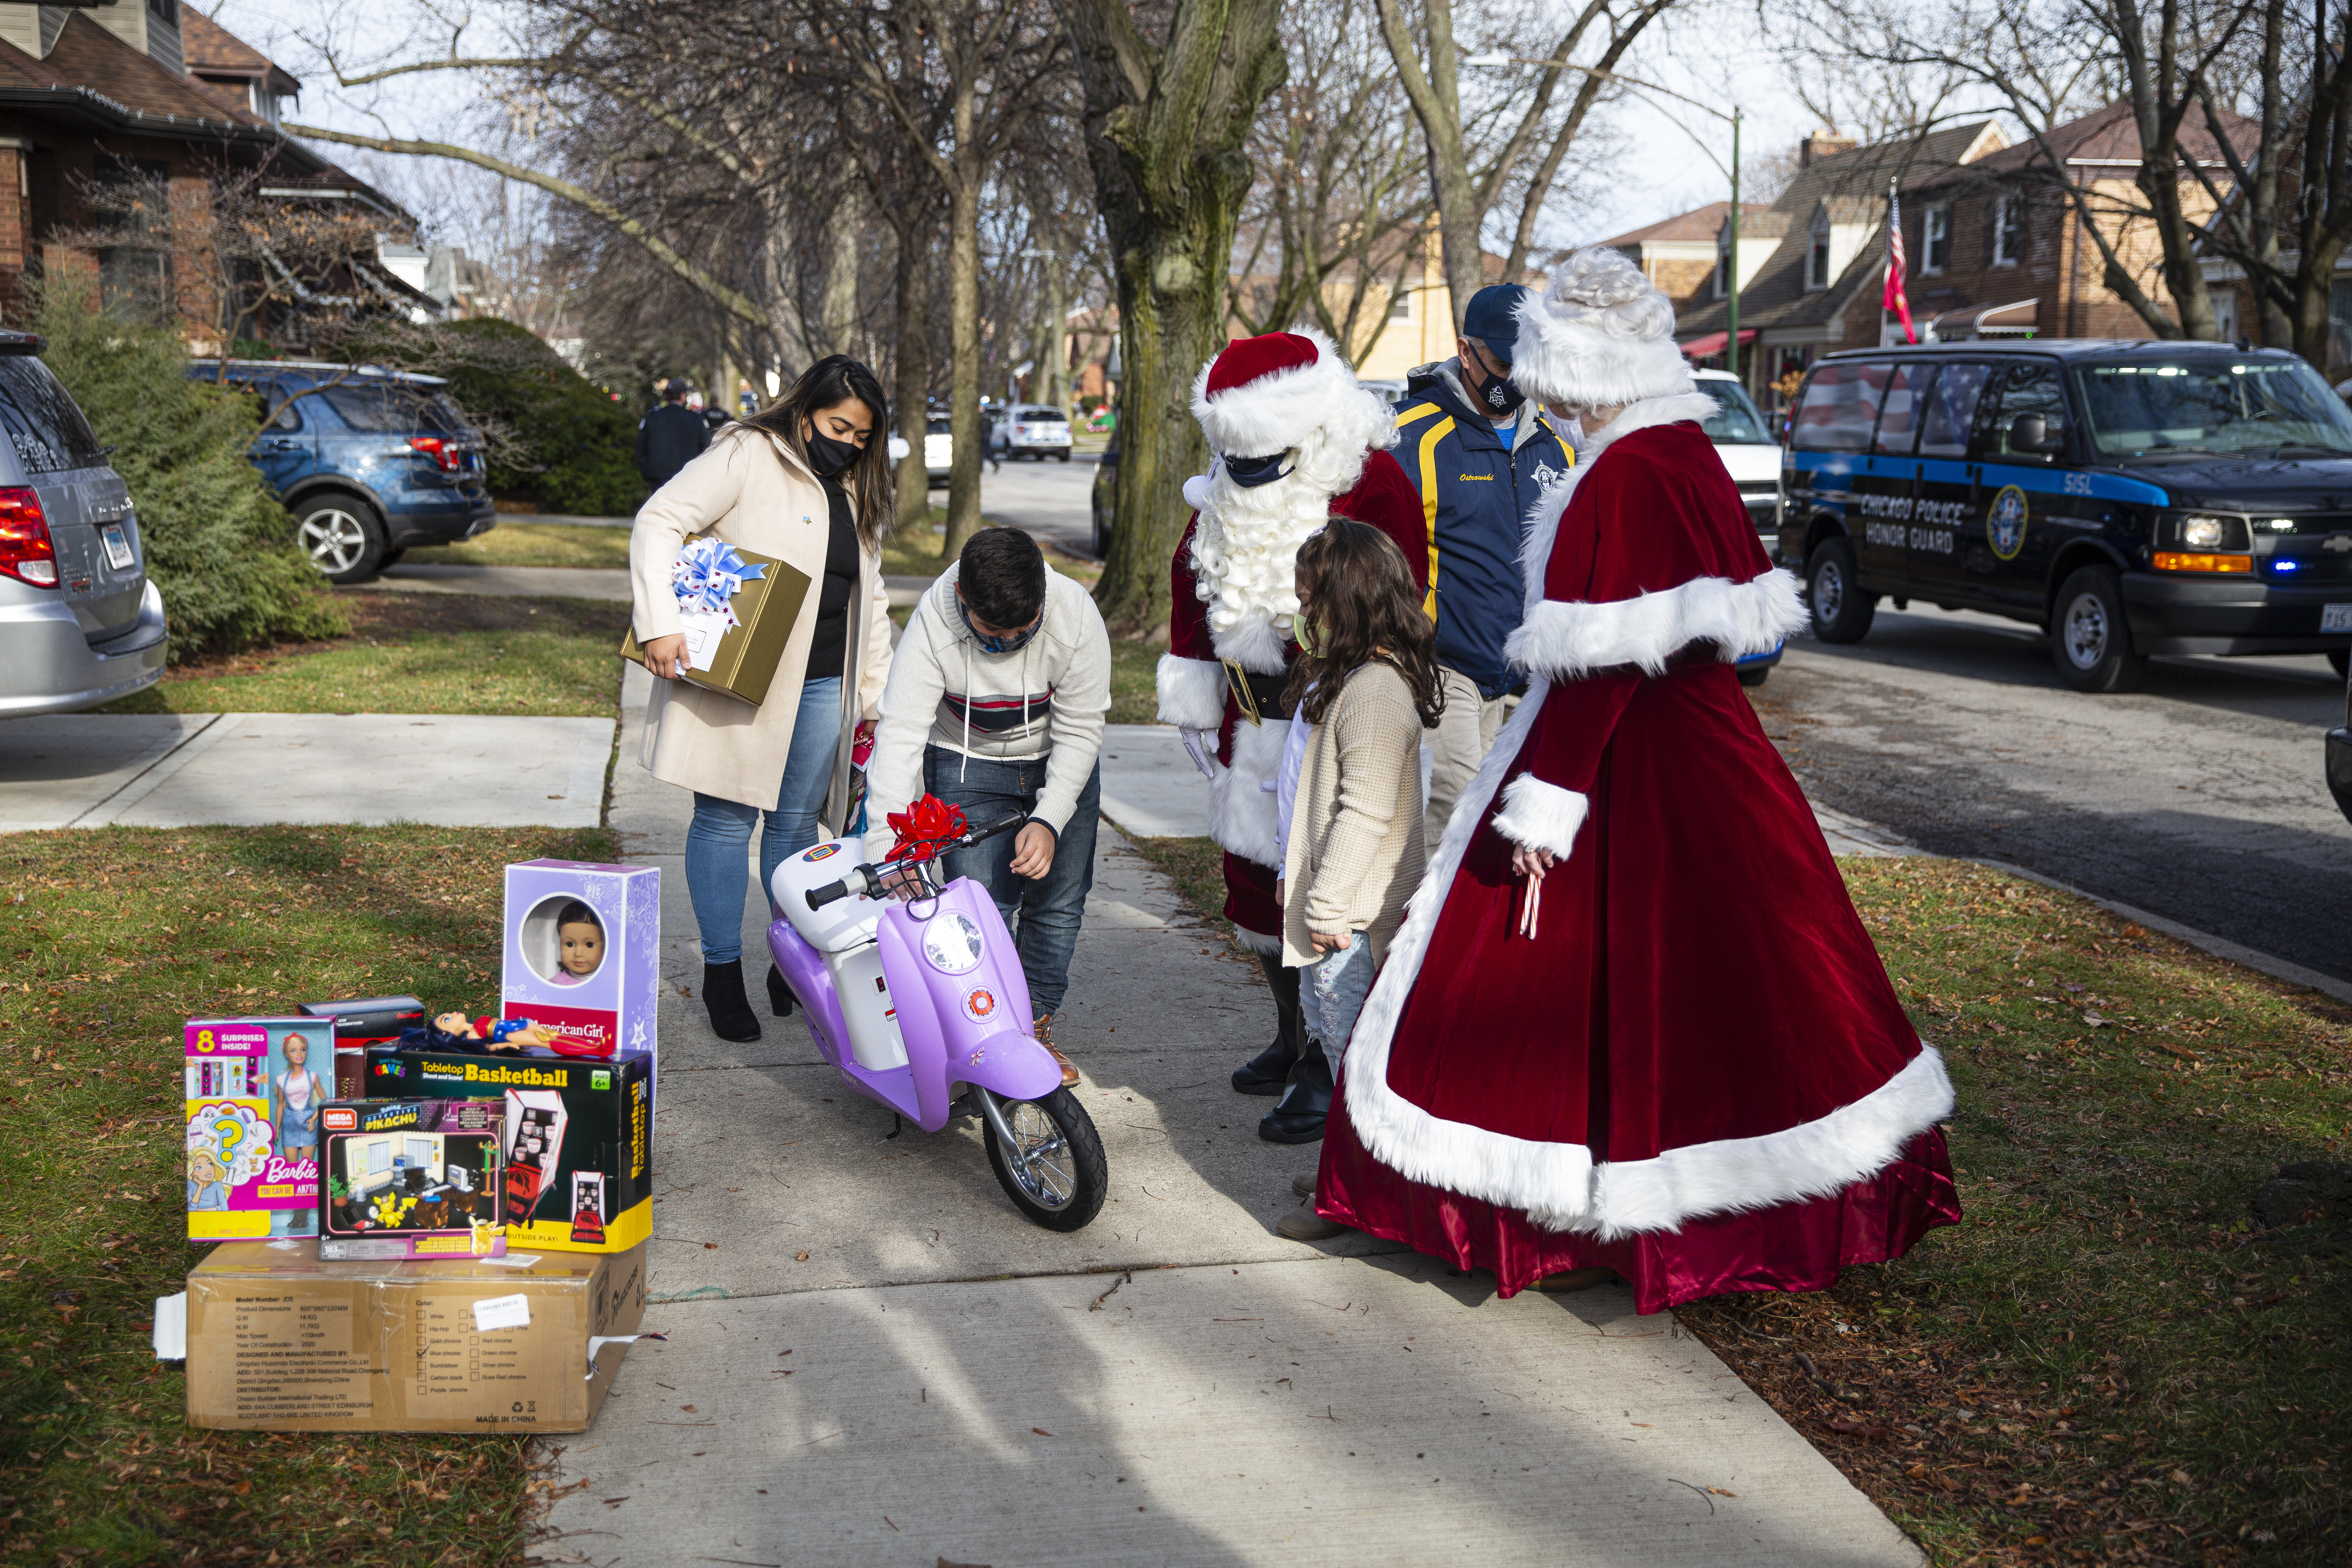 Santa Claus and Mrs. Claus, with the help of the Chicago Police Memorial Foundation, drop off gifts to the family of fallen CPD officer Samuel Jimenez in West Morgan Park on Sunday, Dec. 13, 2020.